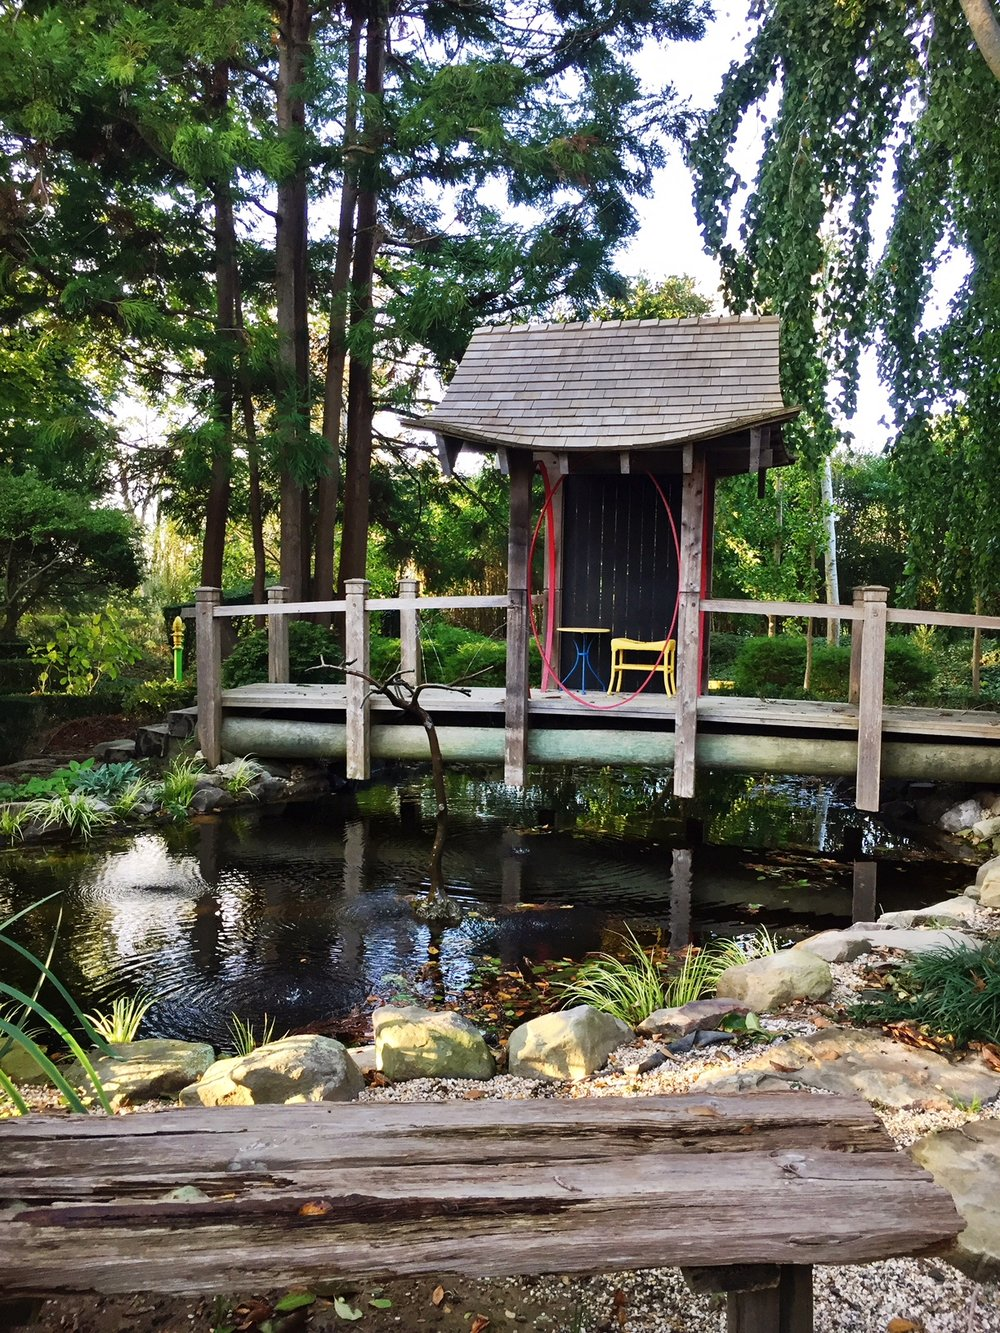 The Garden Is A Cocktail Of Historic And Geographic Influences. This  Japanese  Inspired Bridge, Structure, And Man Made Frog Pond Are Theatrical  And ...